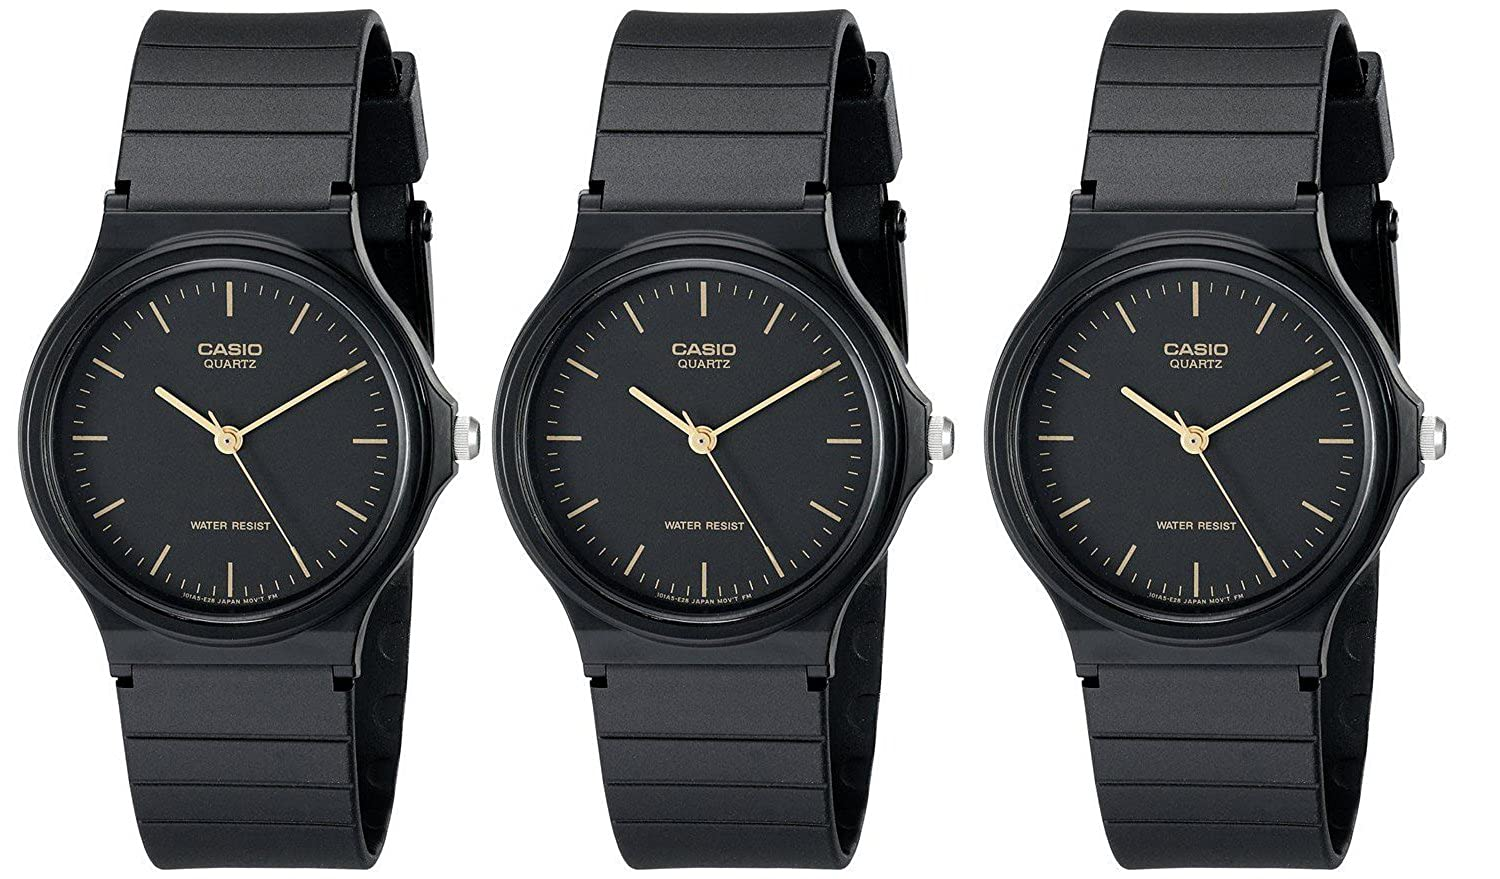 af920ffbf Amazon.com: Casio #MQ24-1E Men's Casual Black Resin Strap Analog Watch  (Special Package Deal 3 Watches): Watches